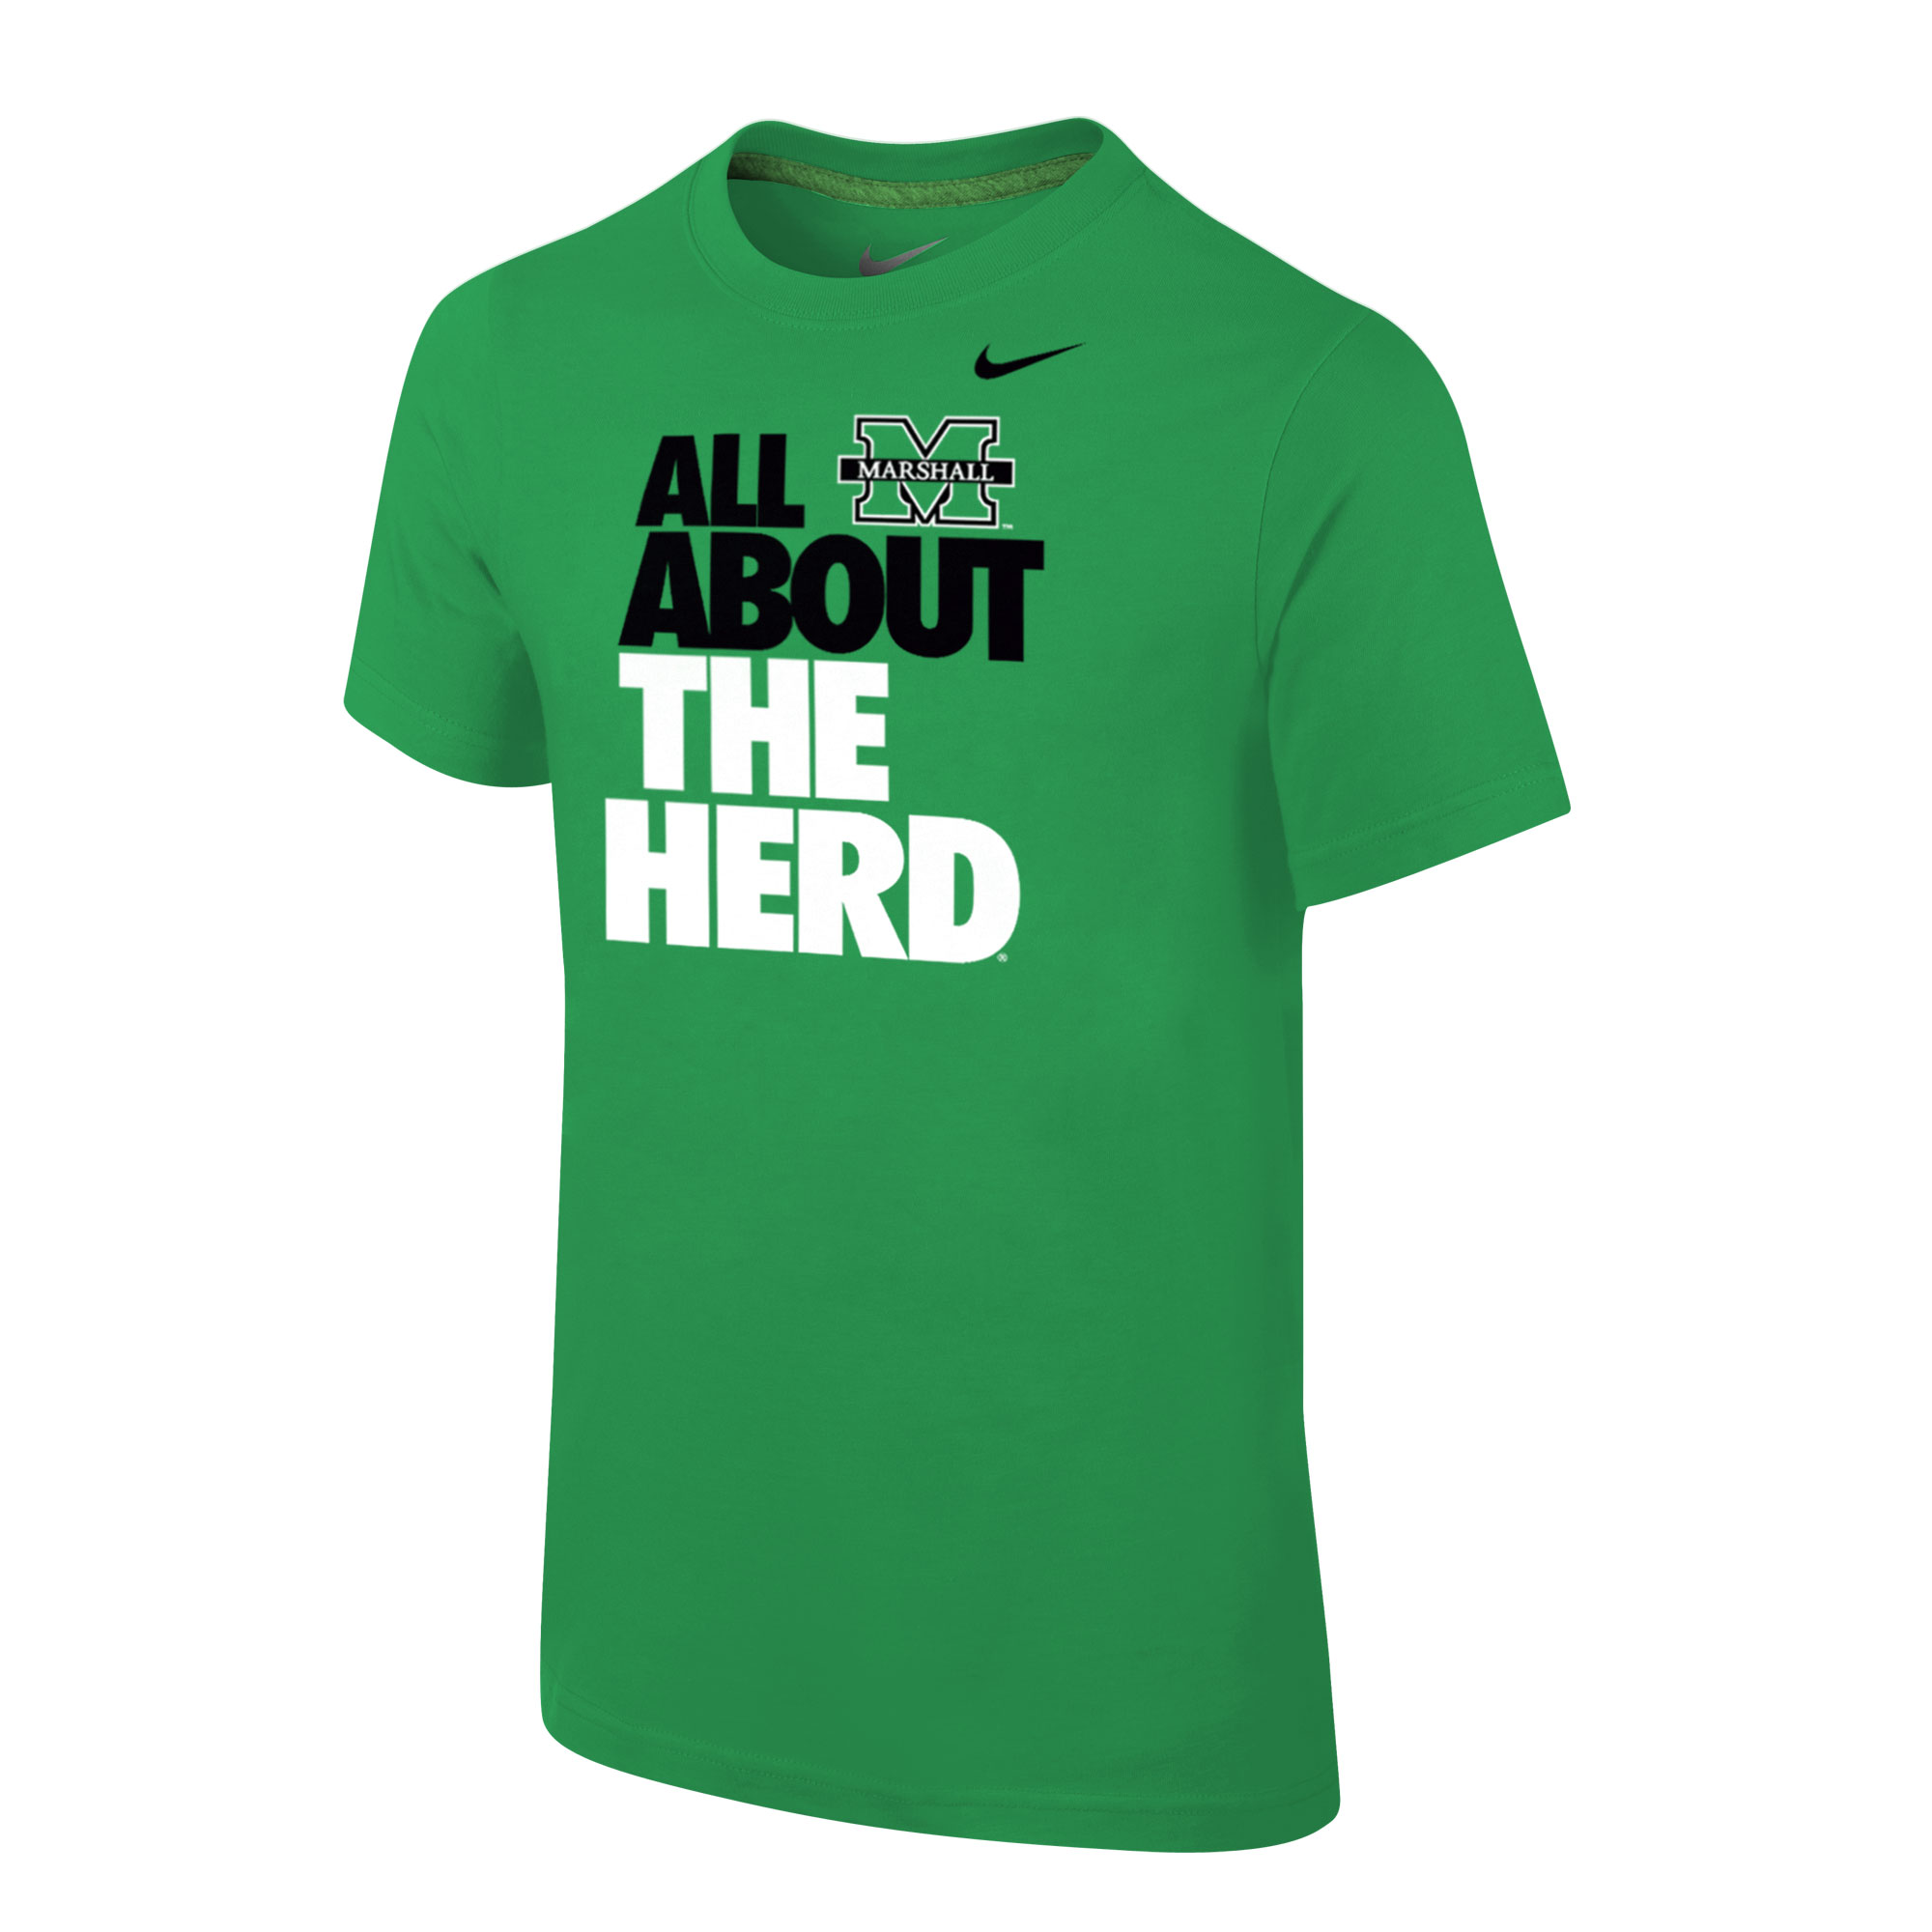 Nike <br> All about the Herd <br> S-XL <br> $25.99